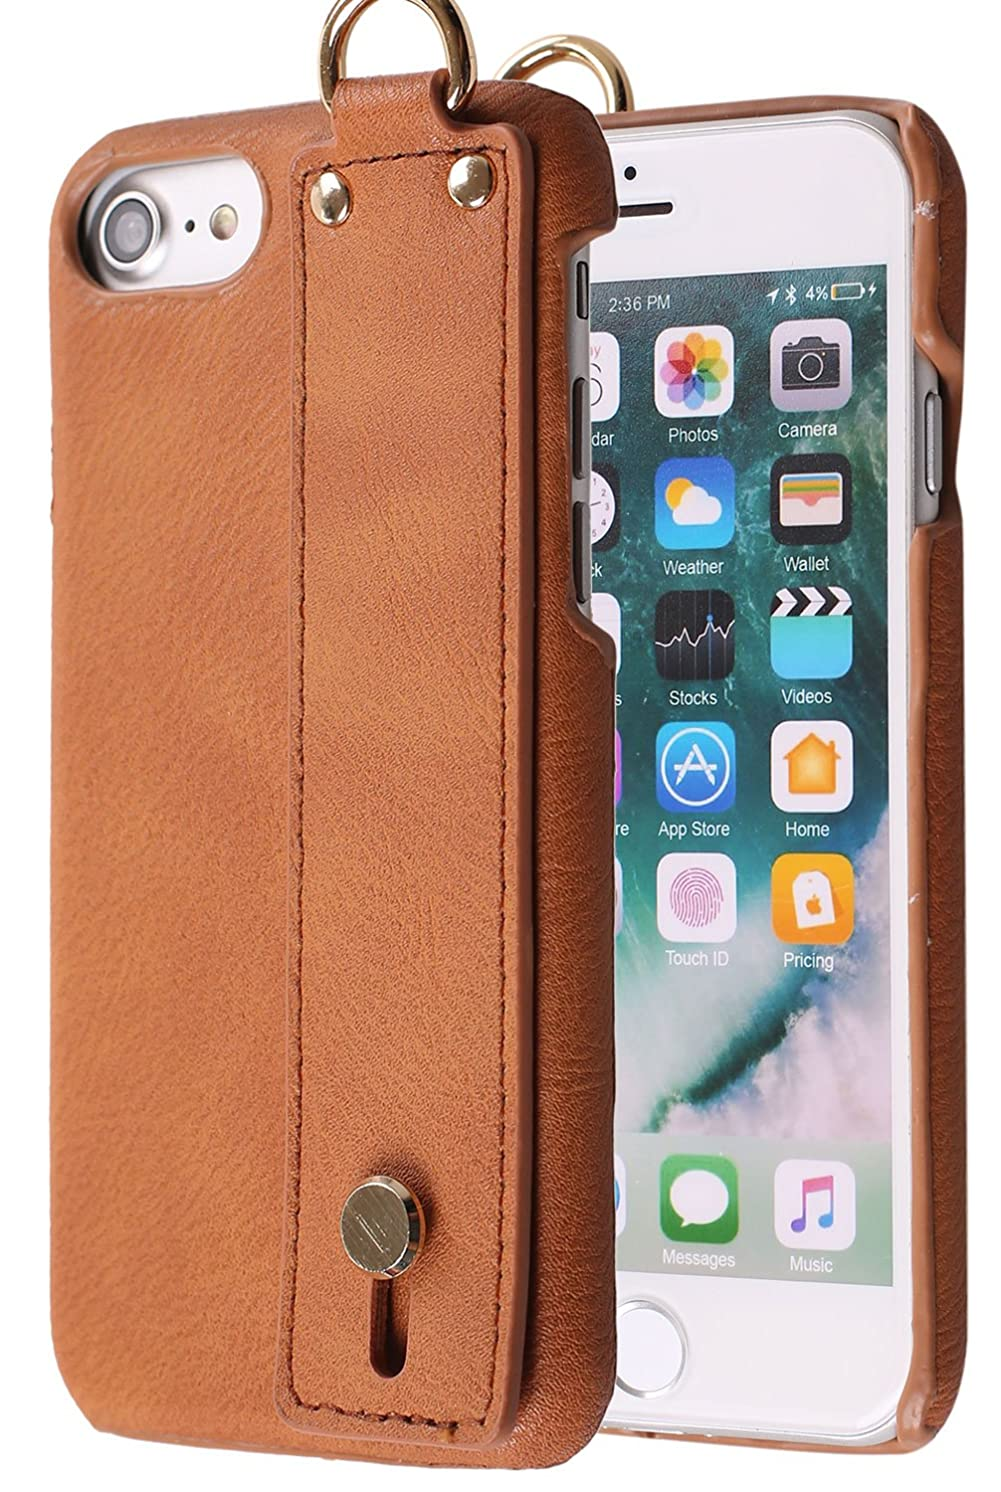 iPhone 8 Case with Handle on Back , Monca Leather Handle [Kickstand] Bumper Case Cover for Apple iPhone 6s / iPhone 7 / iPhone 8 (Brown)